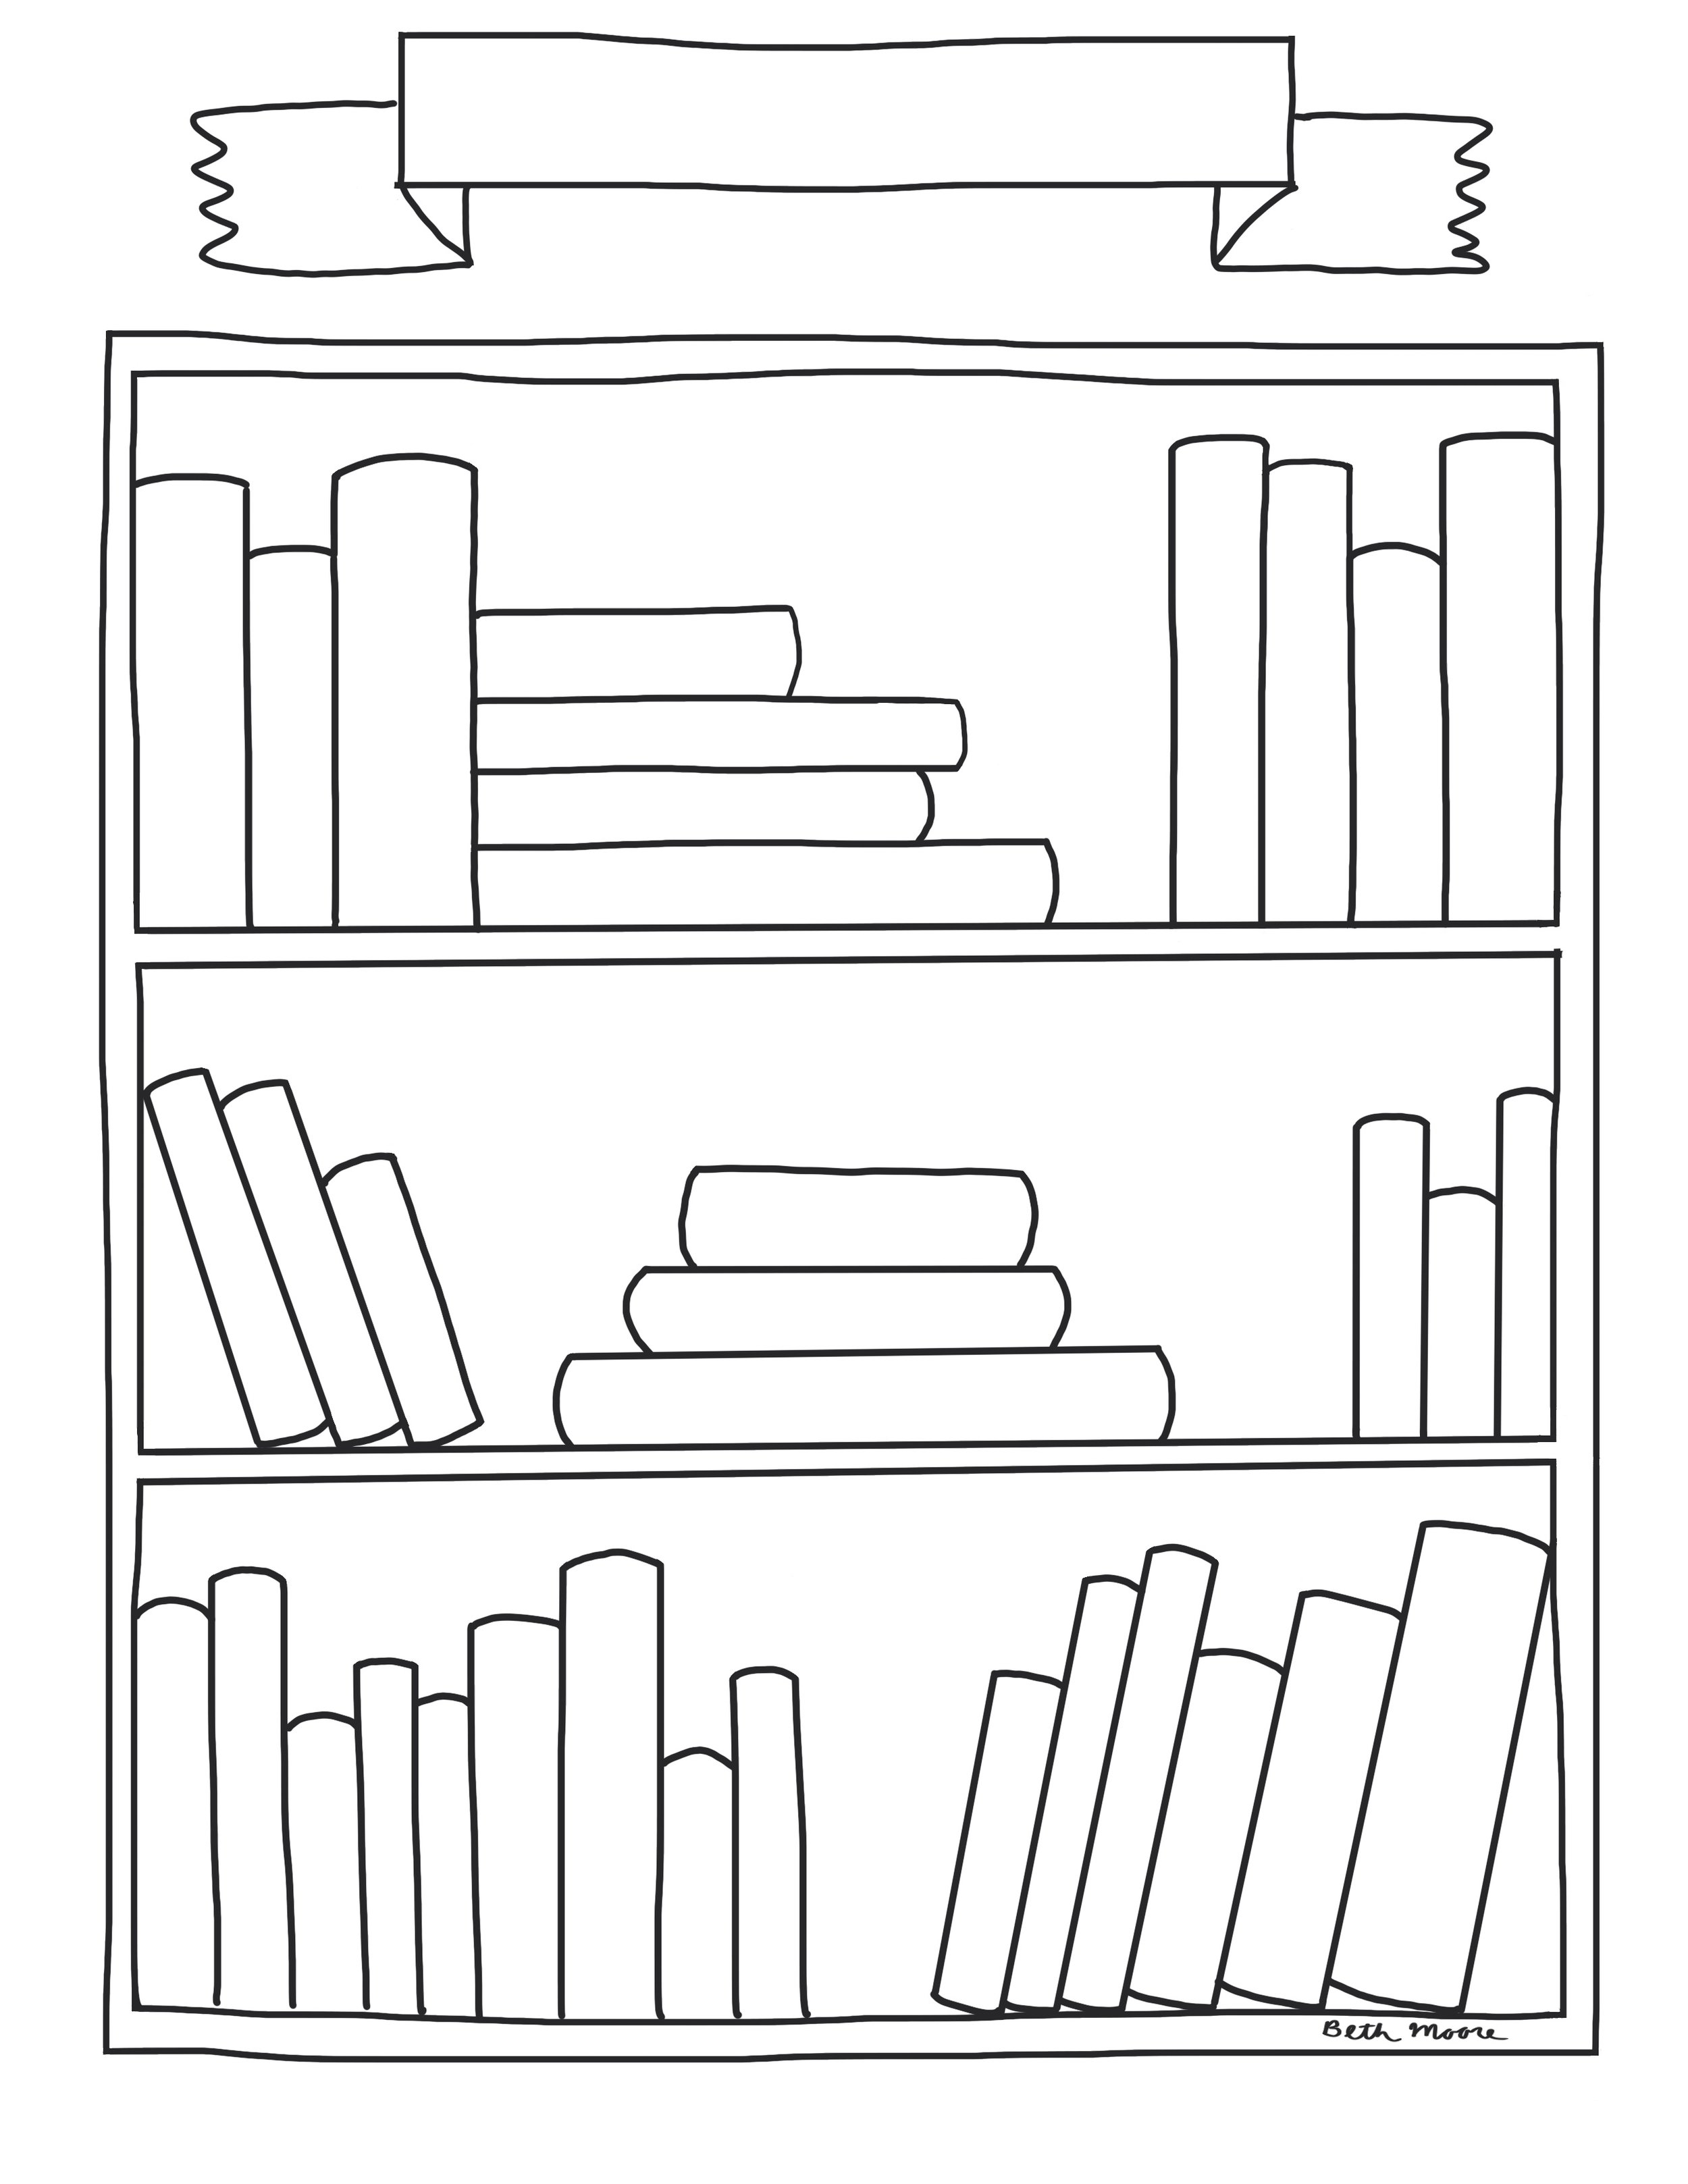 Blank Bookshelf Template - Use this template for any kind of book list—Favorite Books, Book Recommendations, Mentor Texts for Writing, and Favorite Read-Alouds…